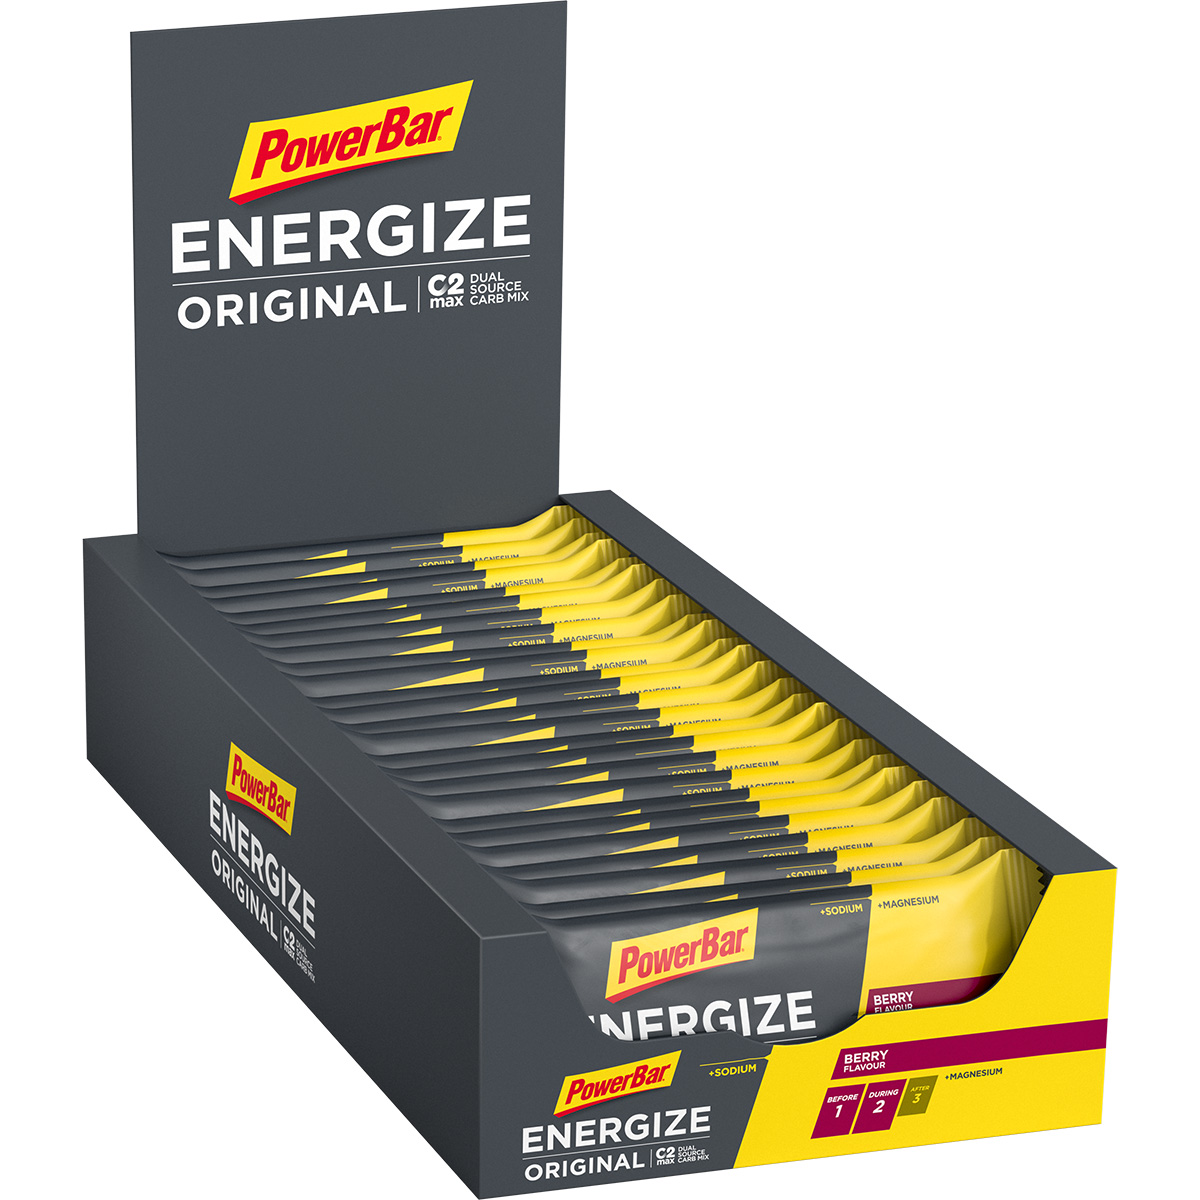 Energize Original MHD AKTION